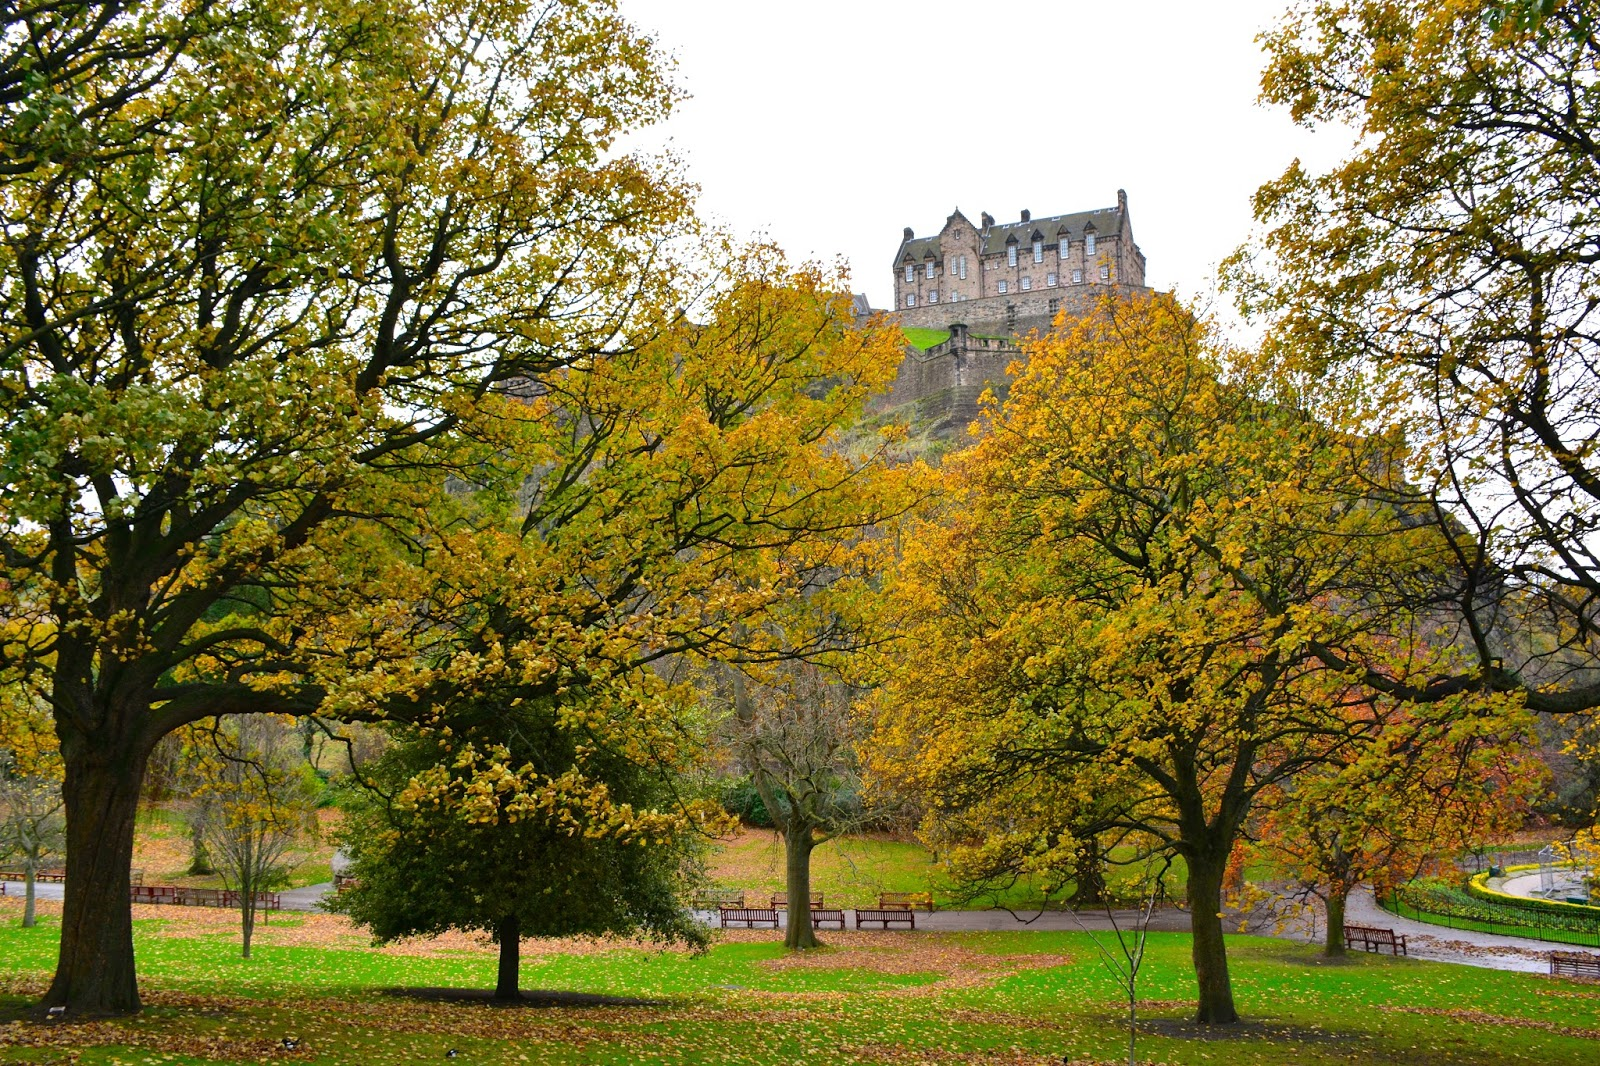 Edinburgh Castle from Princes Street Gardens in autumn